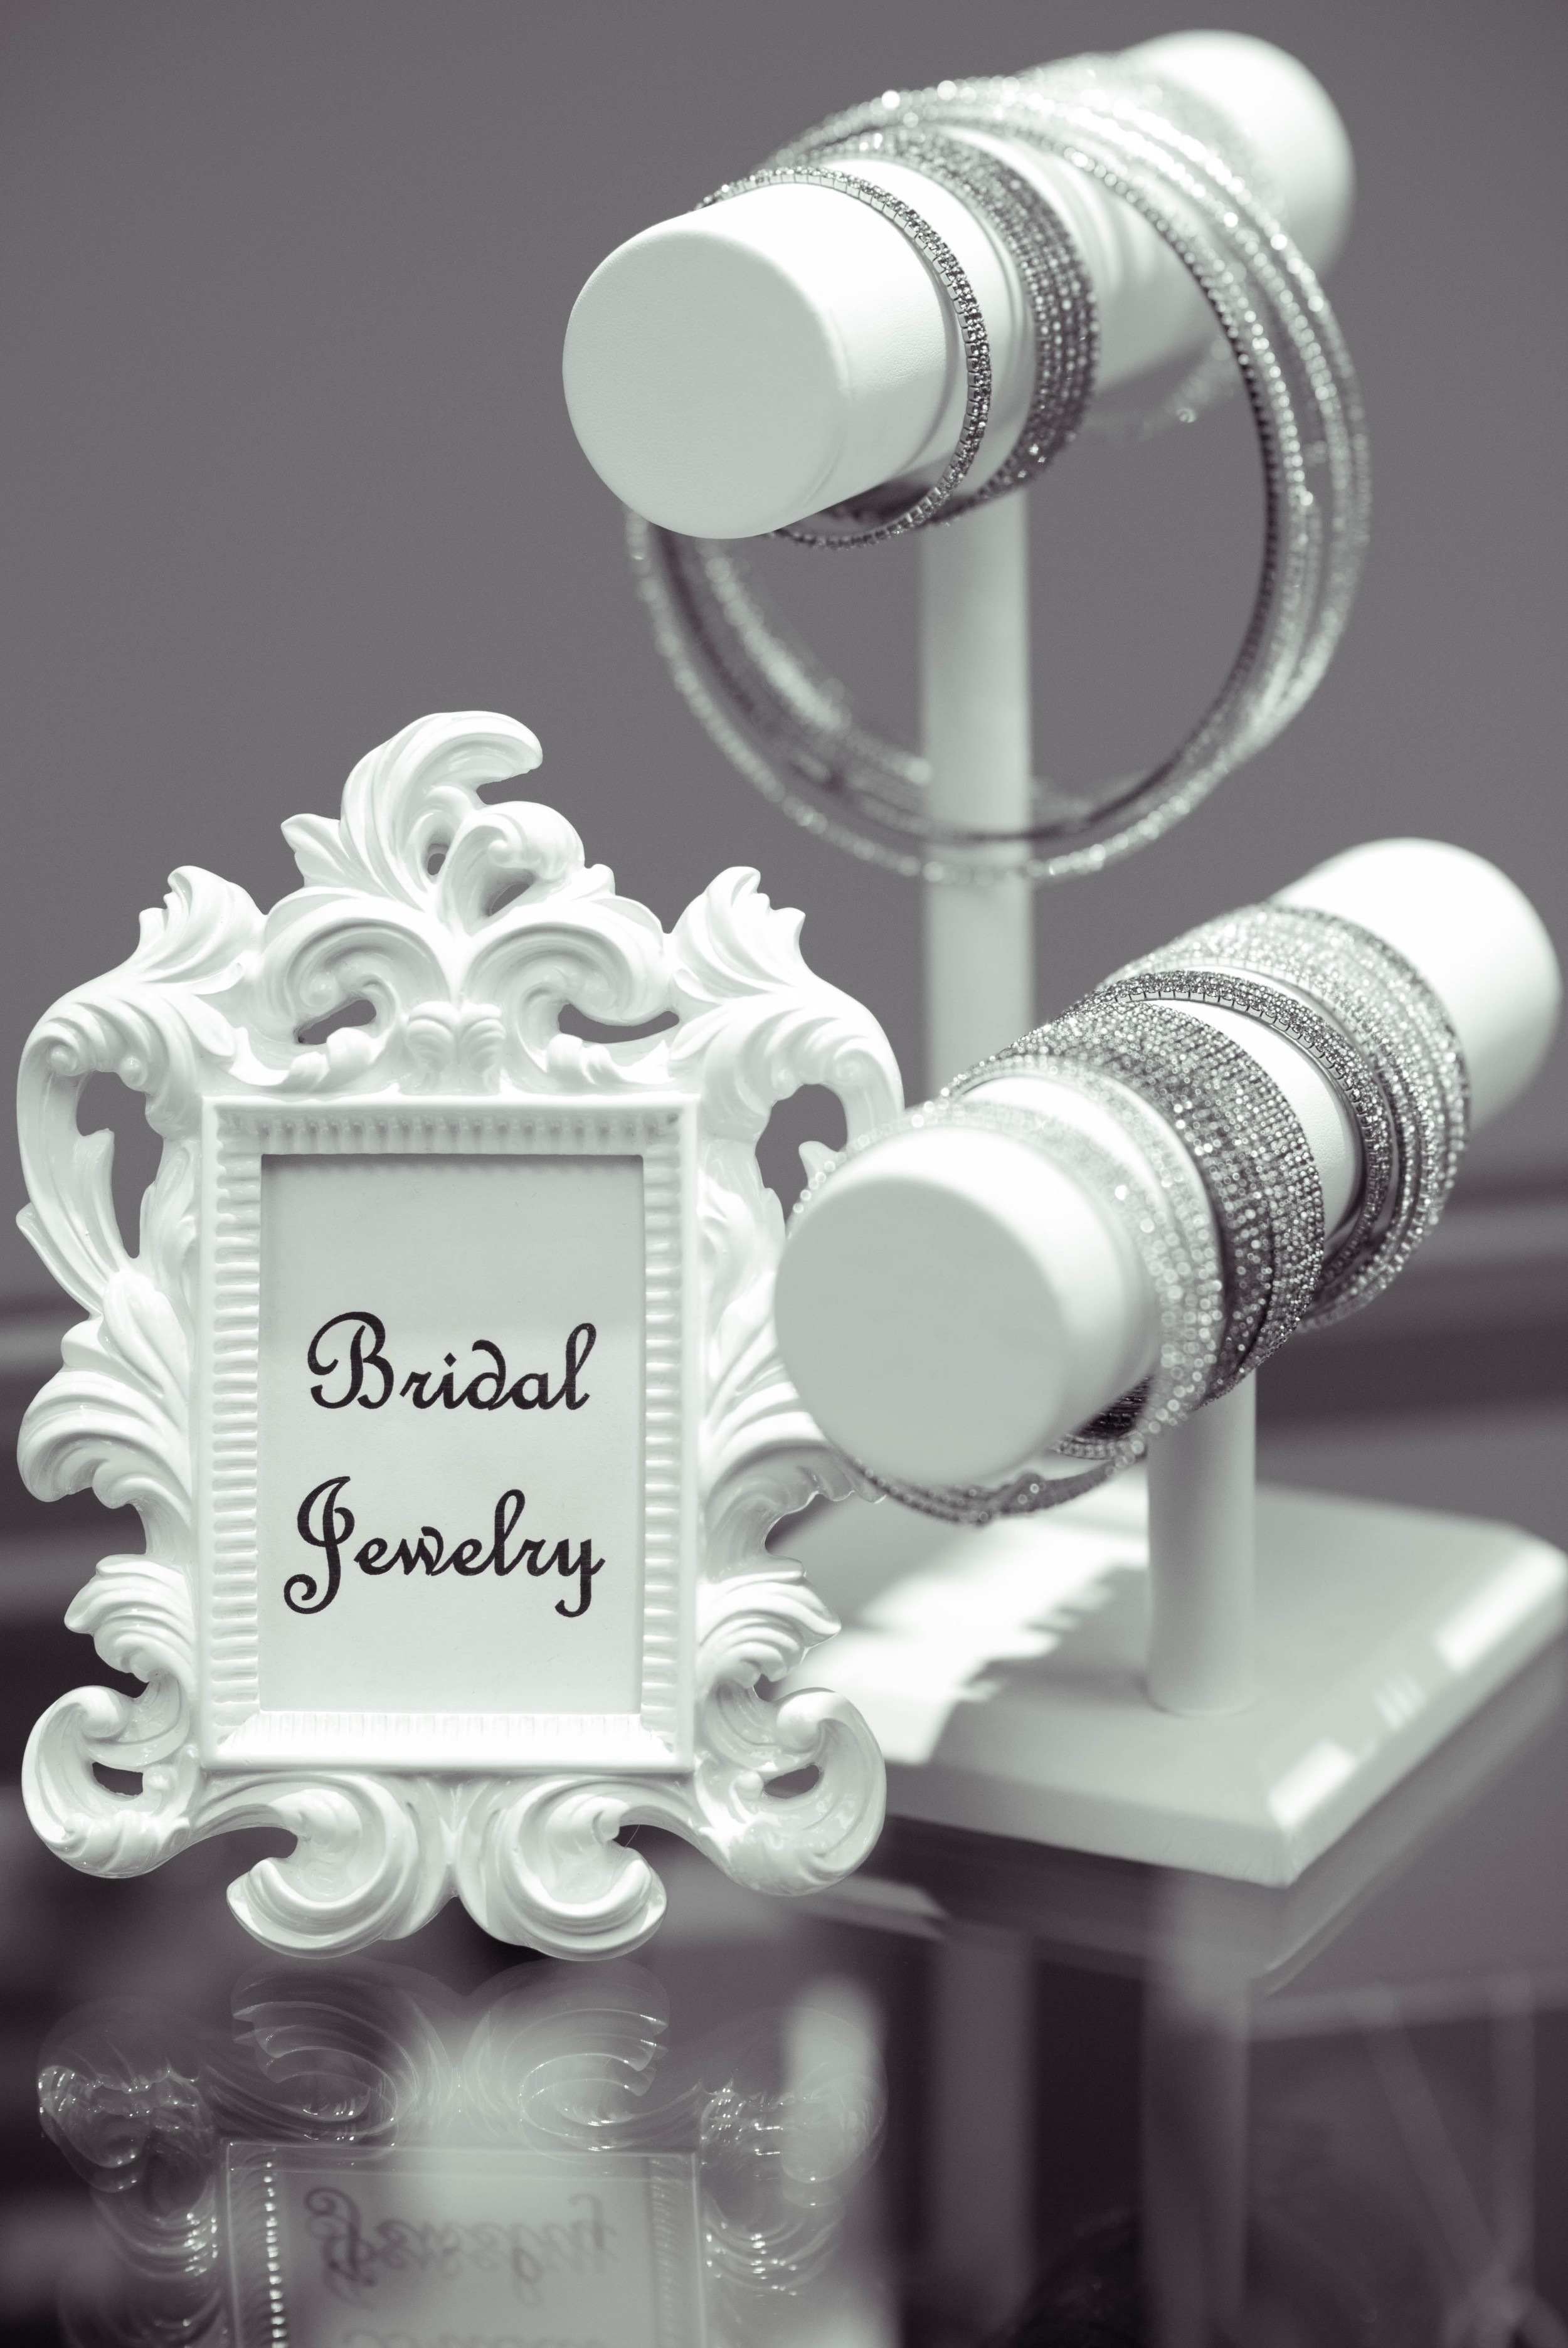 A large selection of Bridal accessories